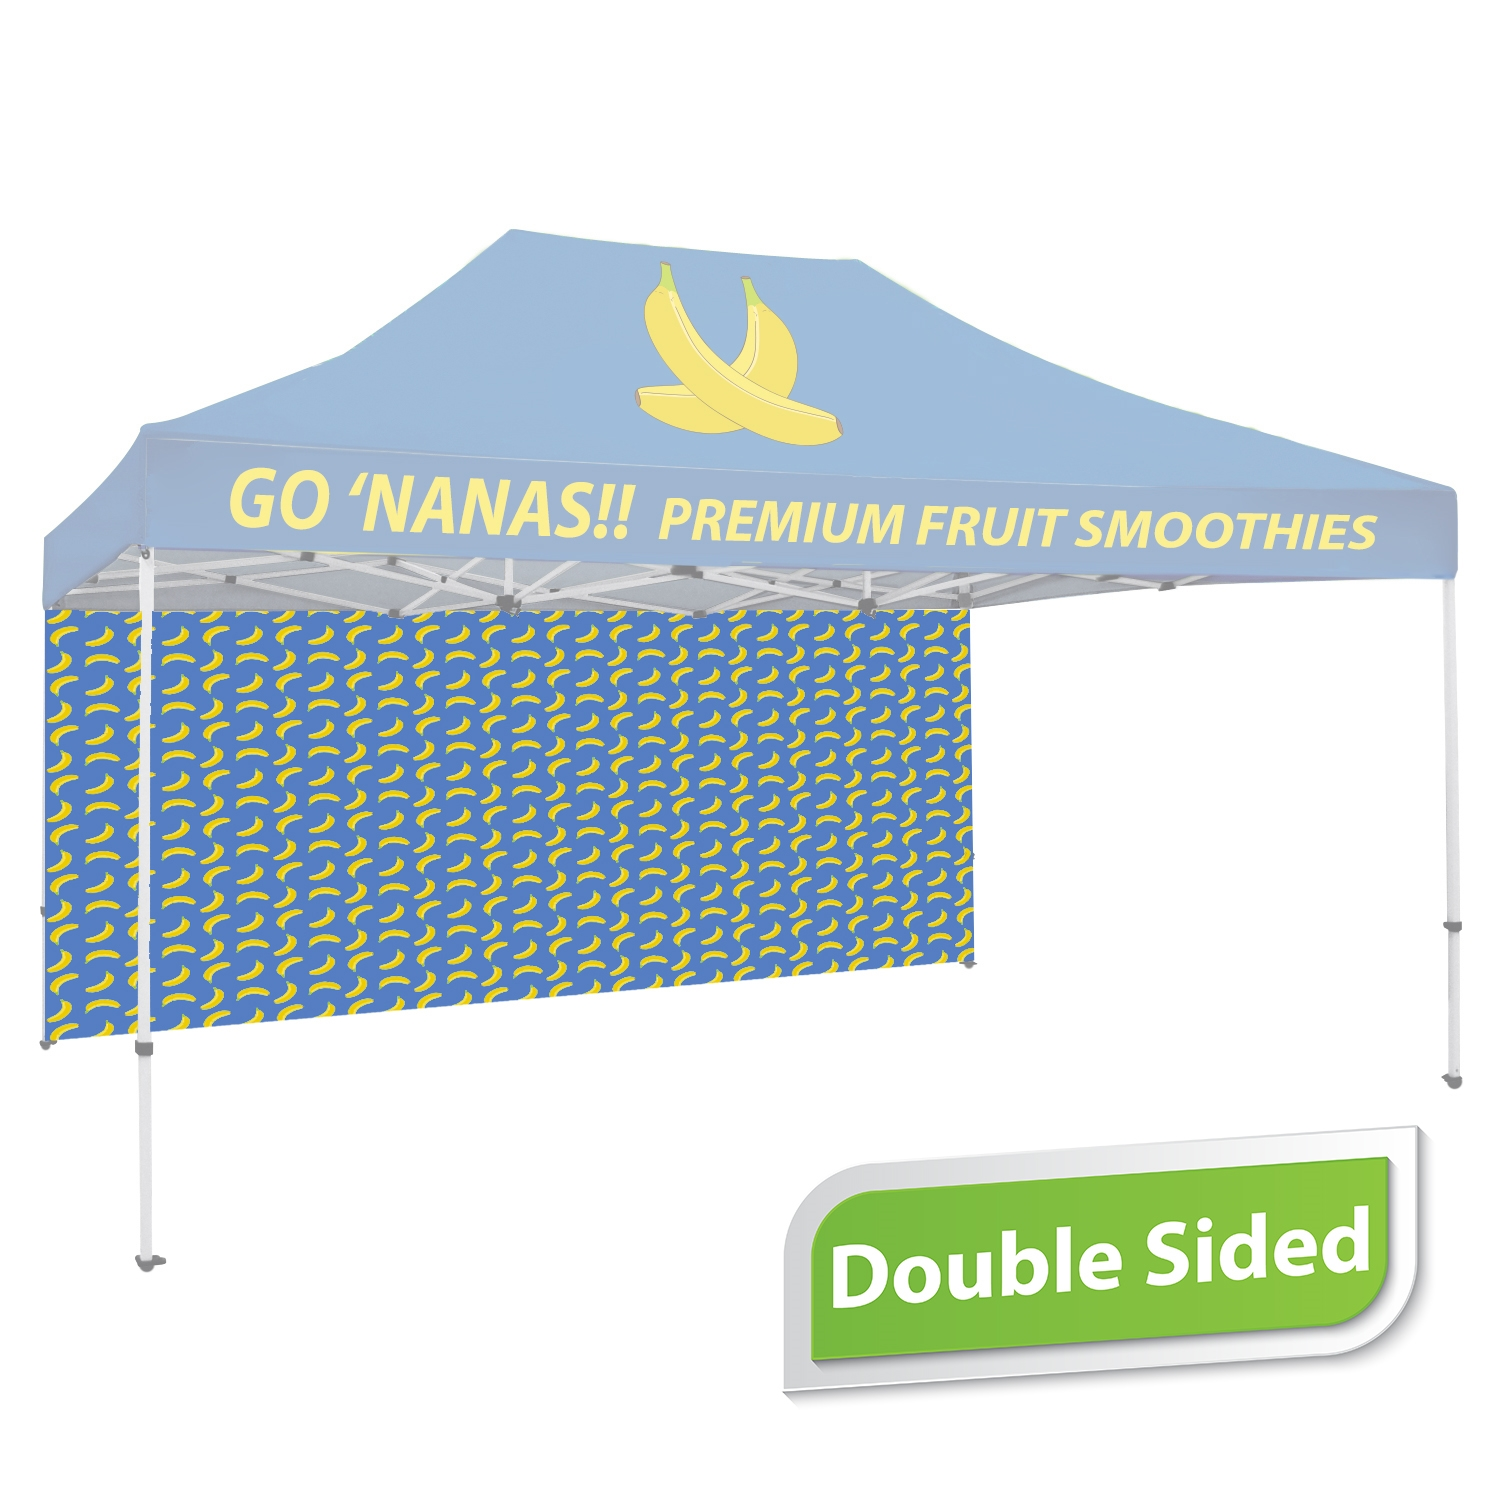 15 FT. Tent Back Wall - Full Color Double-Sided Graphic